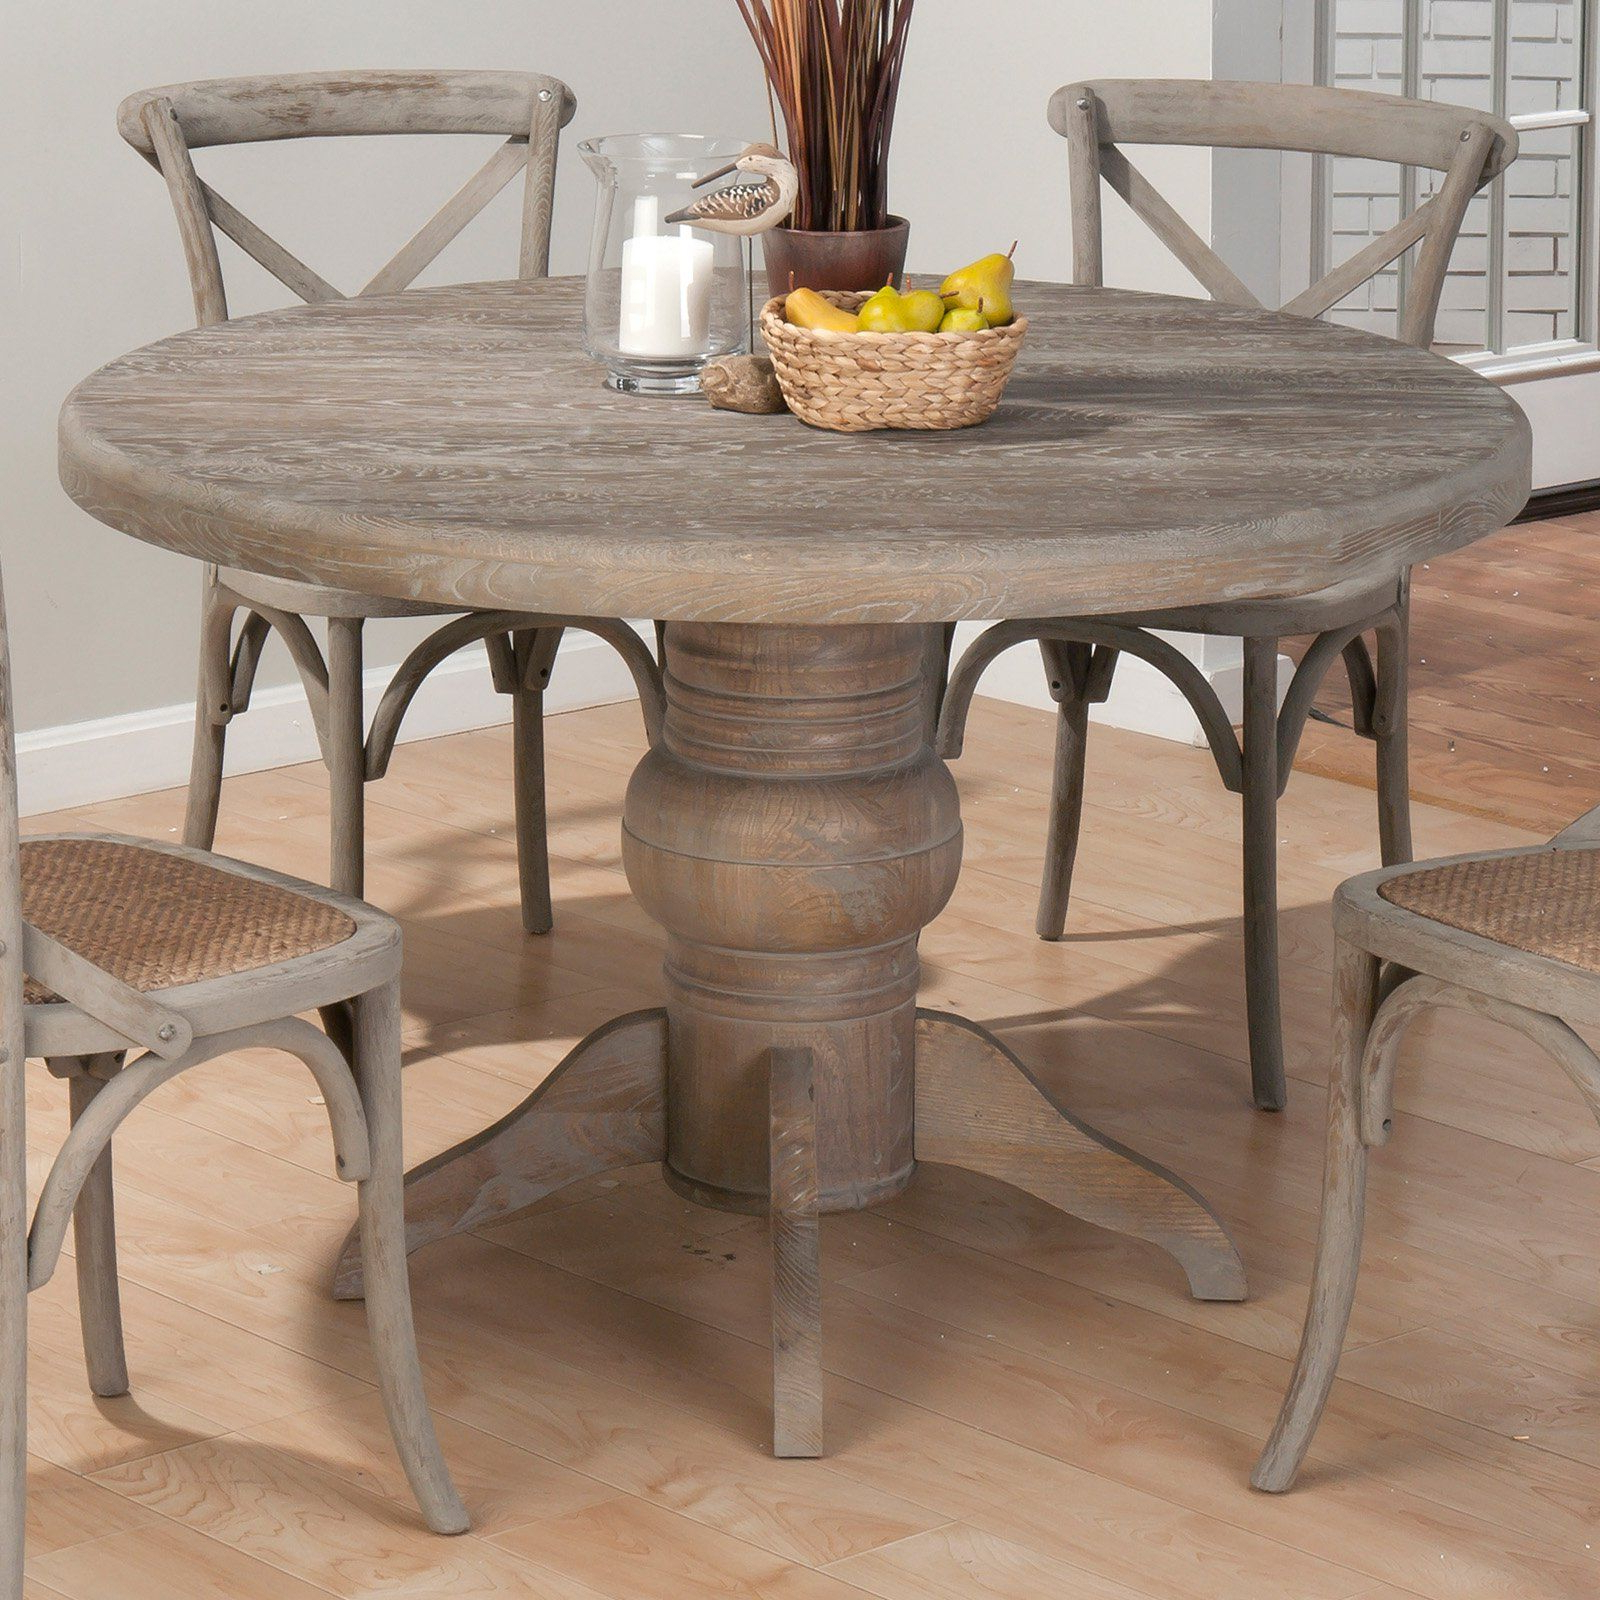 Well Liked Distressed Grey Finish Wood Classic Design Dining Tables For Jofran Booth Bay Round Pedestal Dining Table – With A (View 4 of 25)